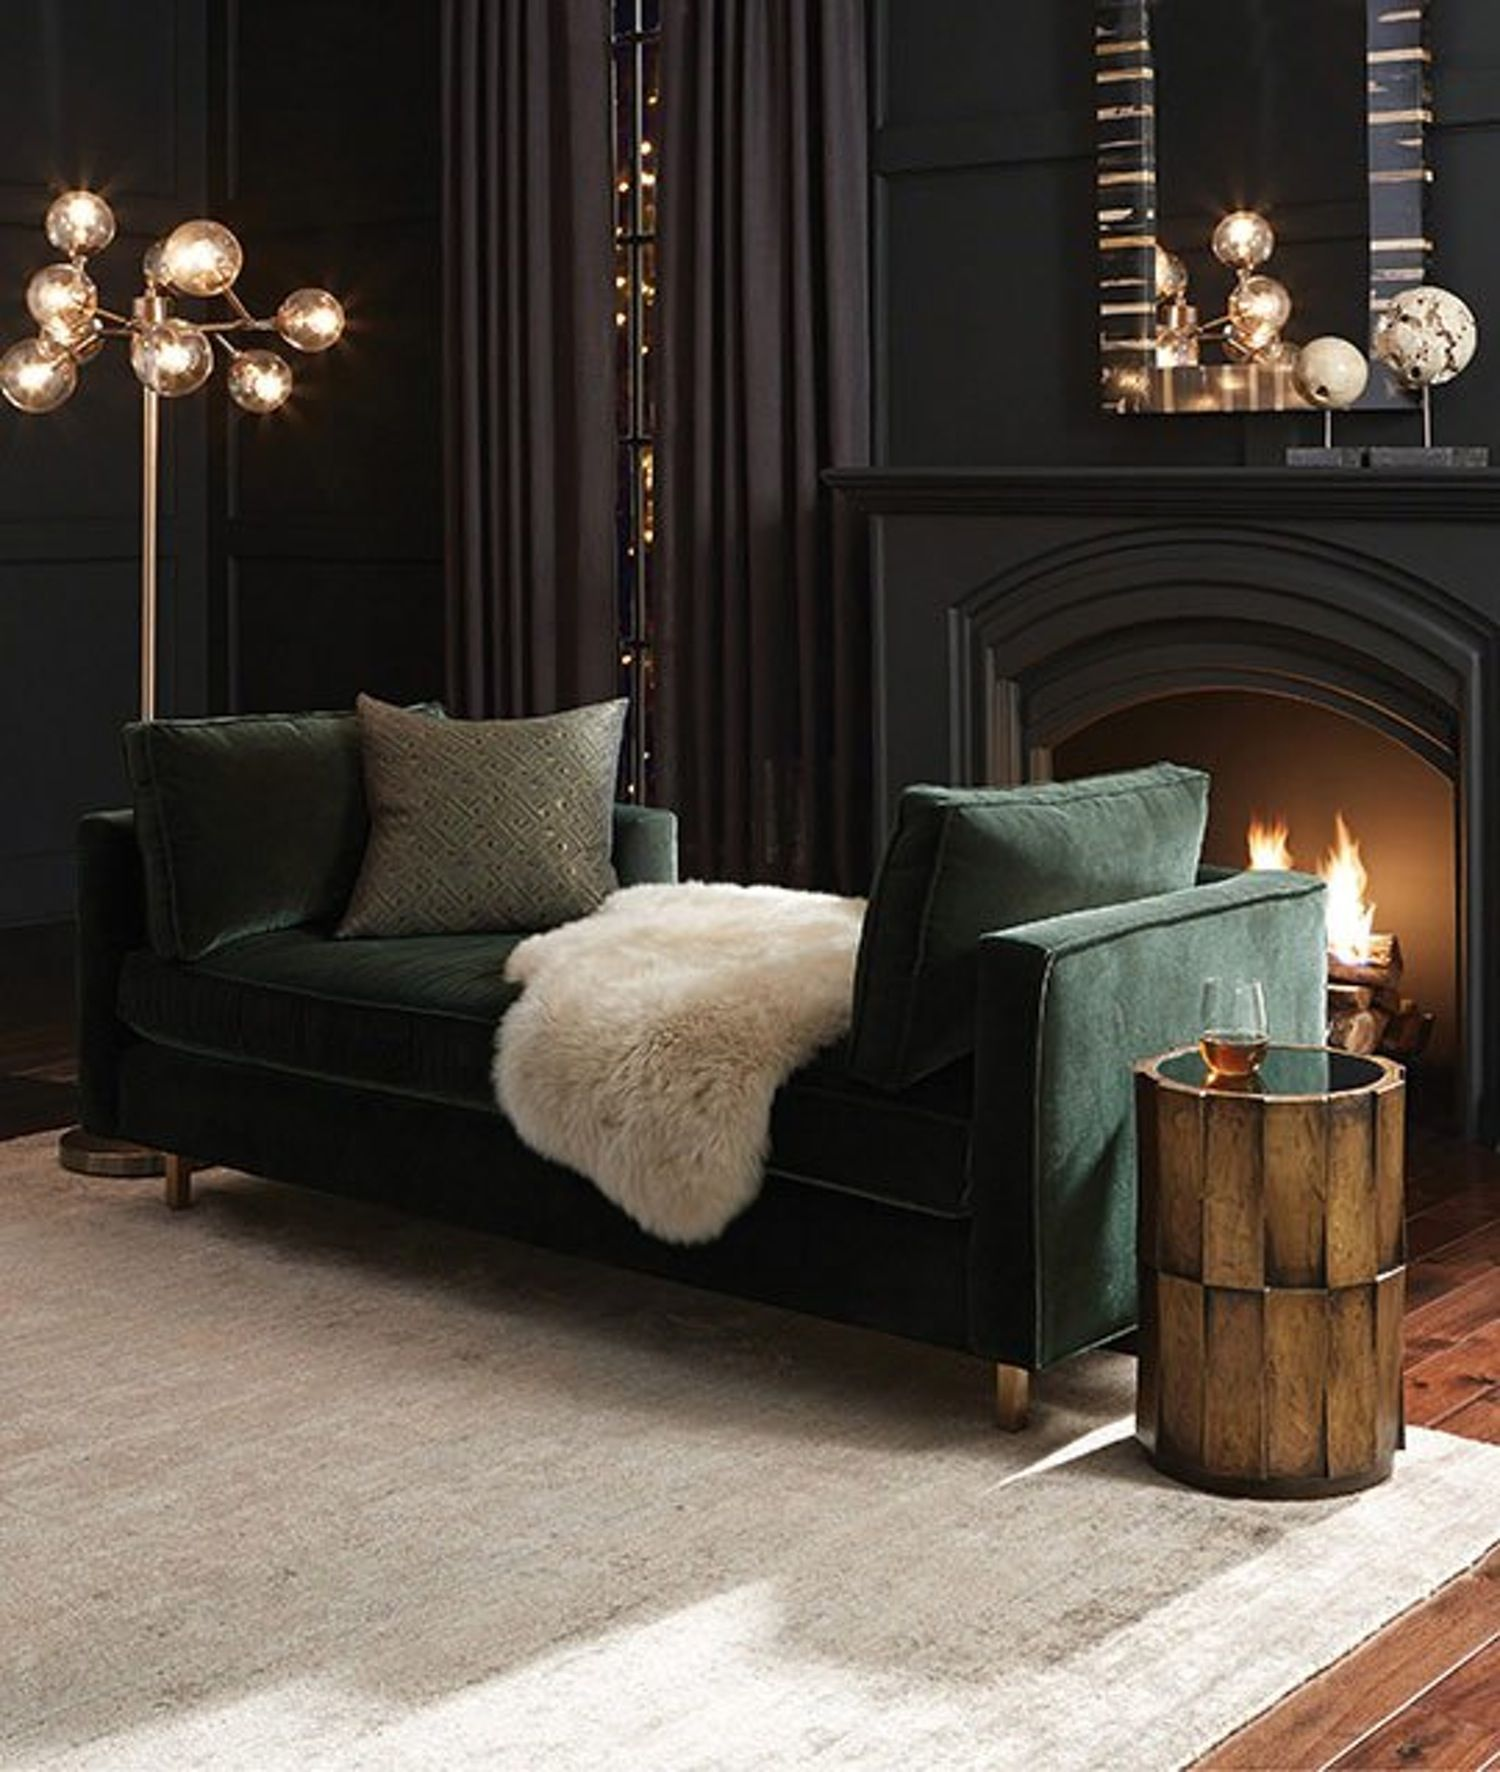 Introducing the new modern home black walls pinterest room